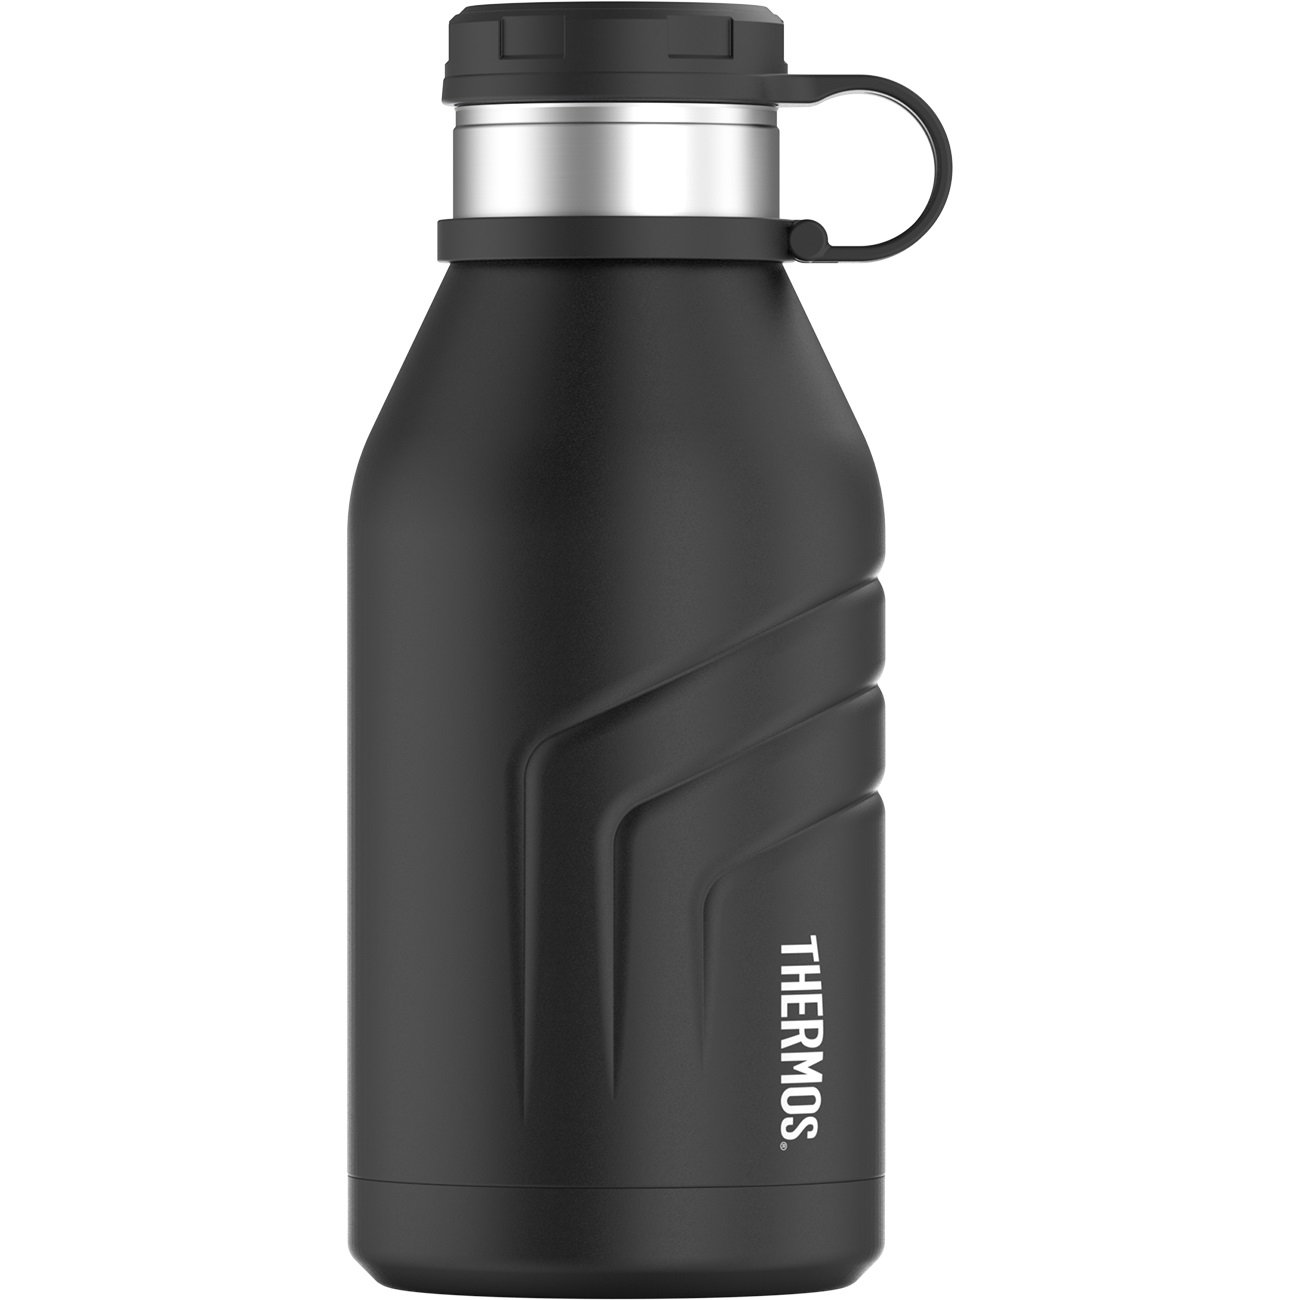 써모스 음료수 물통 Thermos Element 5 Vacuum Insulated 32 oz Beverage Bottle with Screw Top Lid, Black